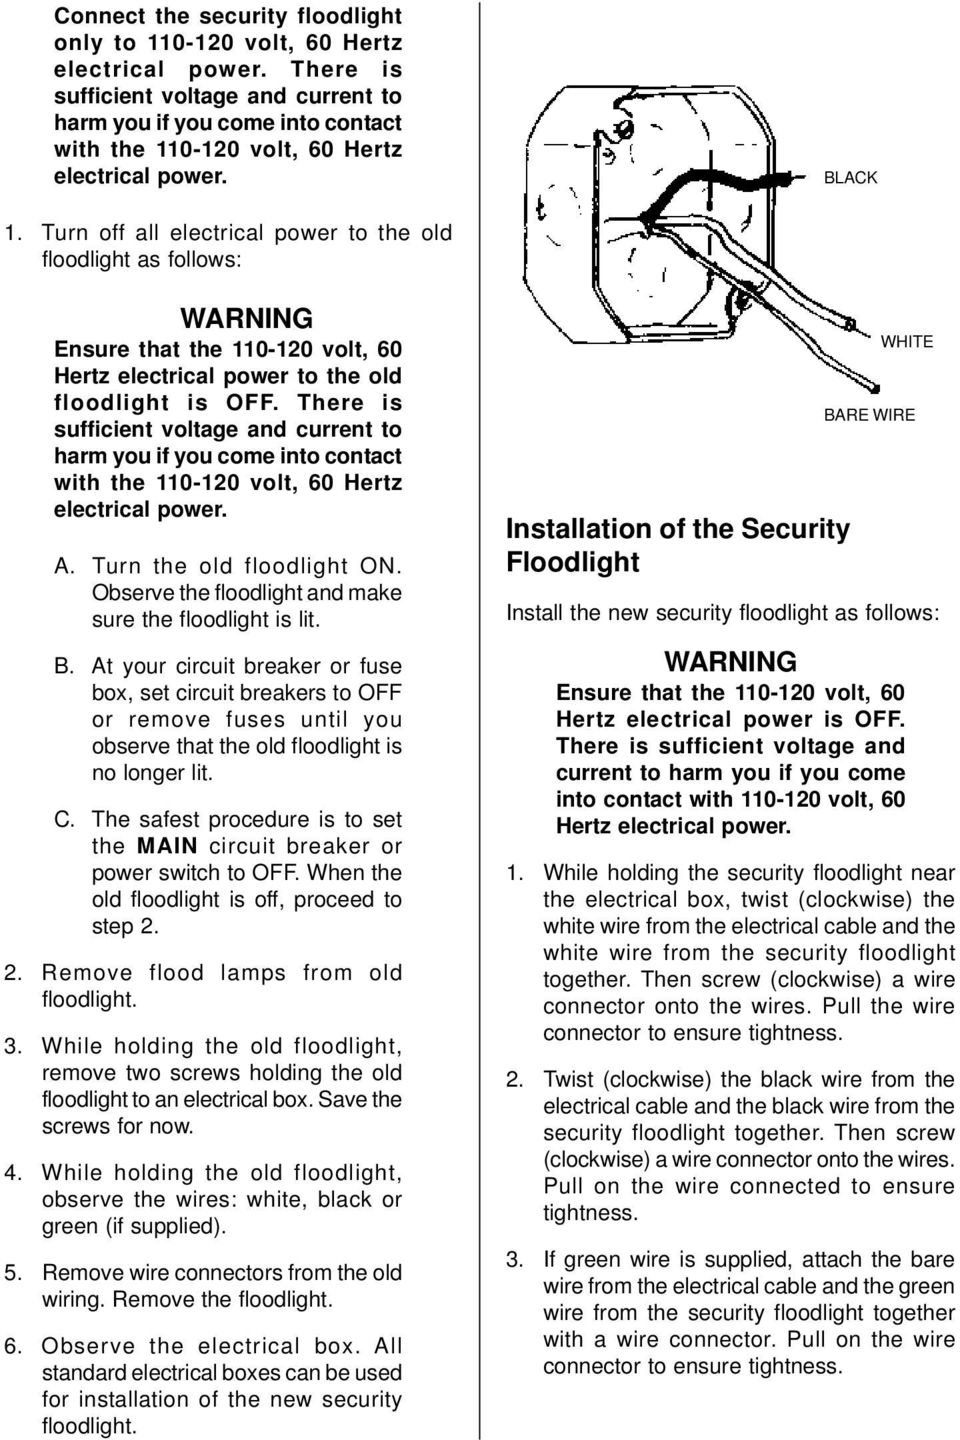 hight resolution of turn off all electrical power to the old floodlight as follows warning ensure that the